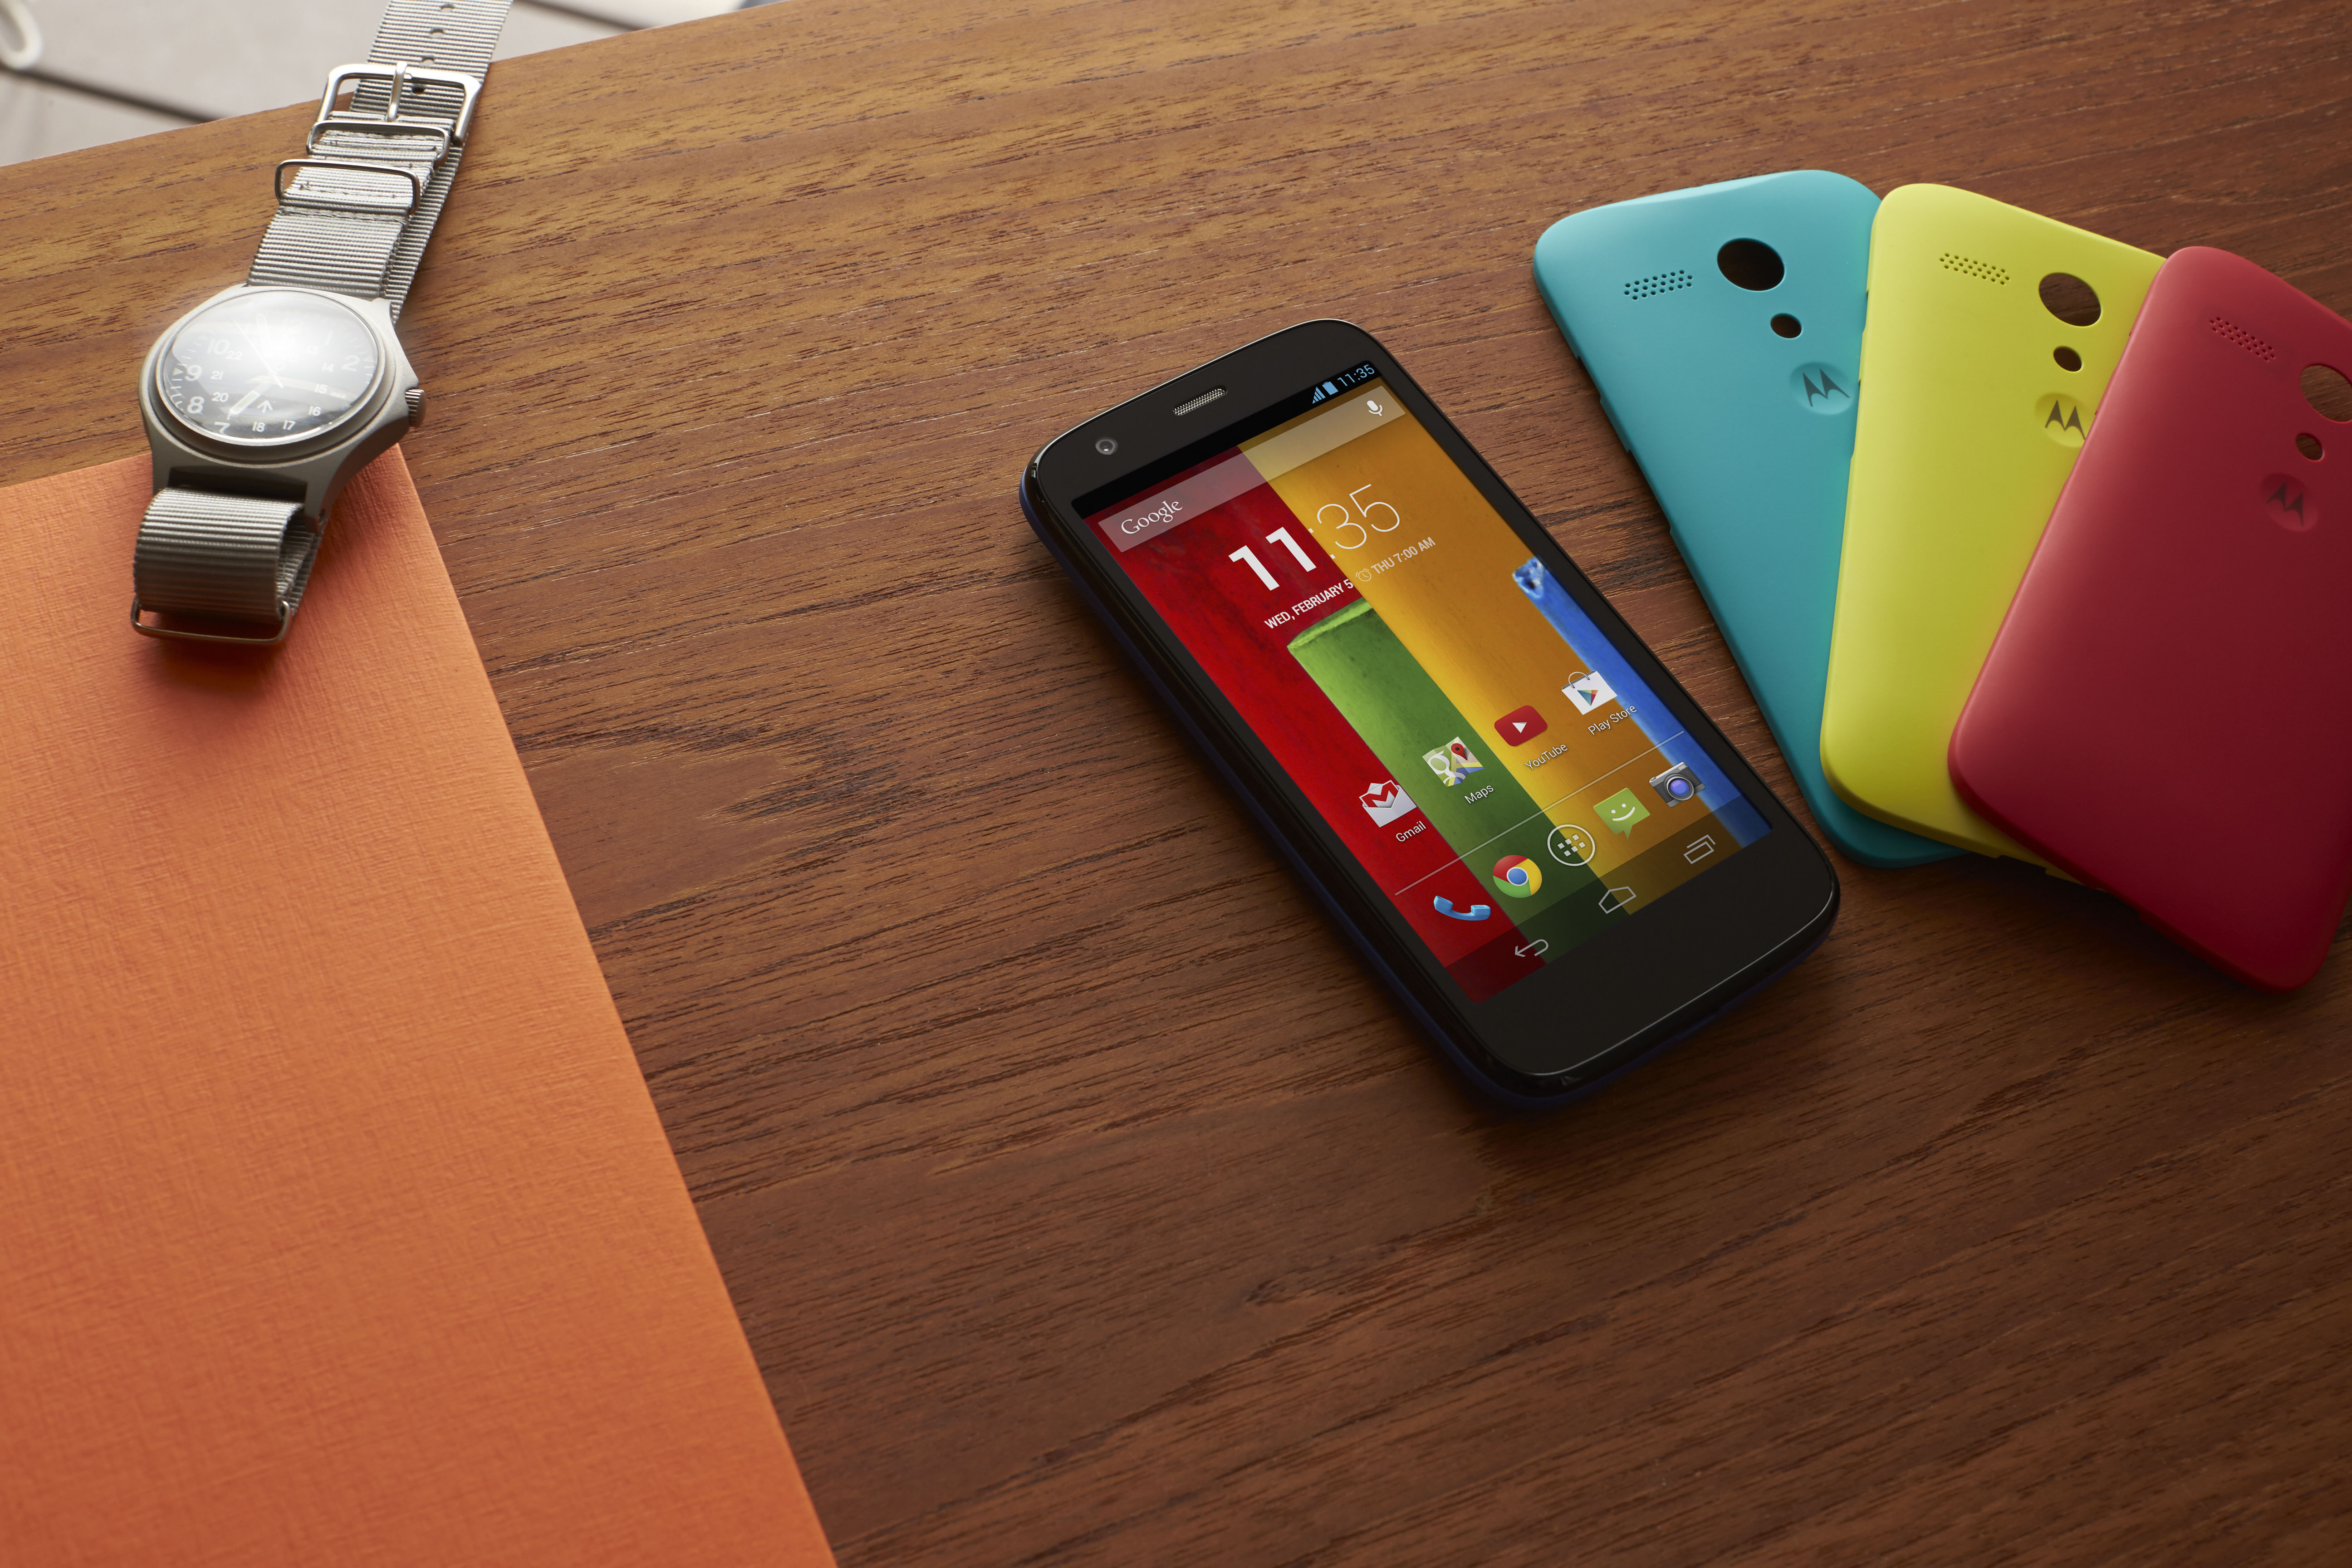 an image of the first generation of moto g.